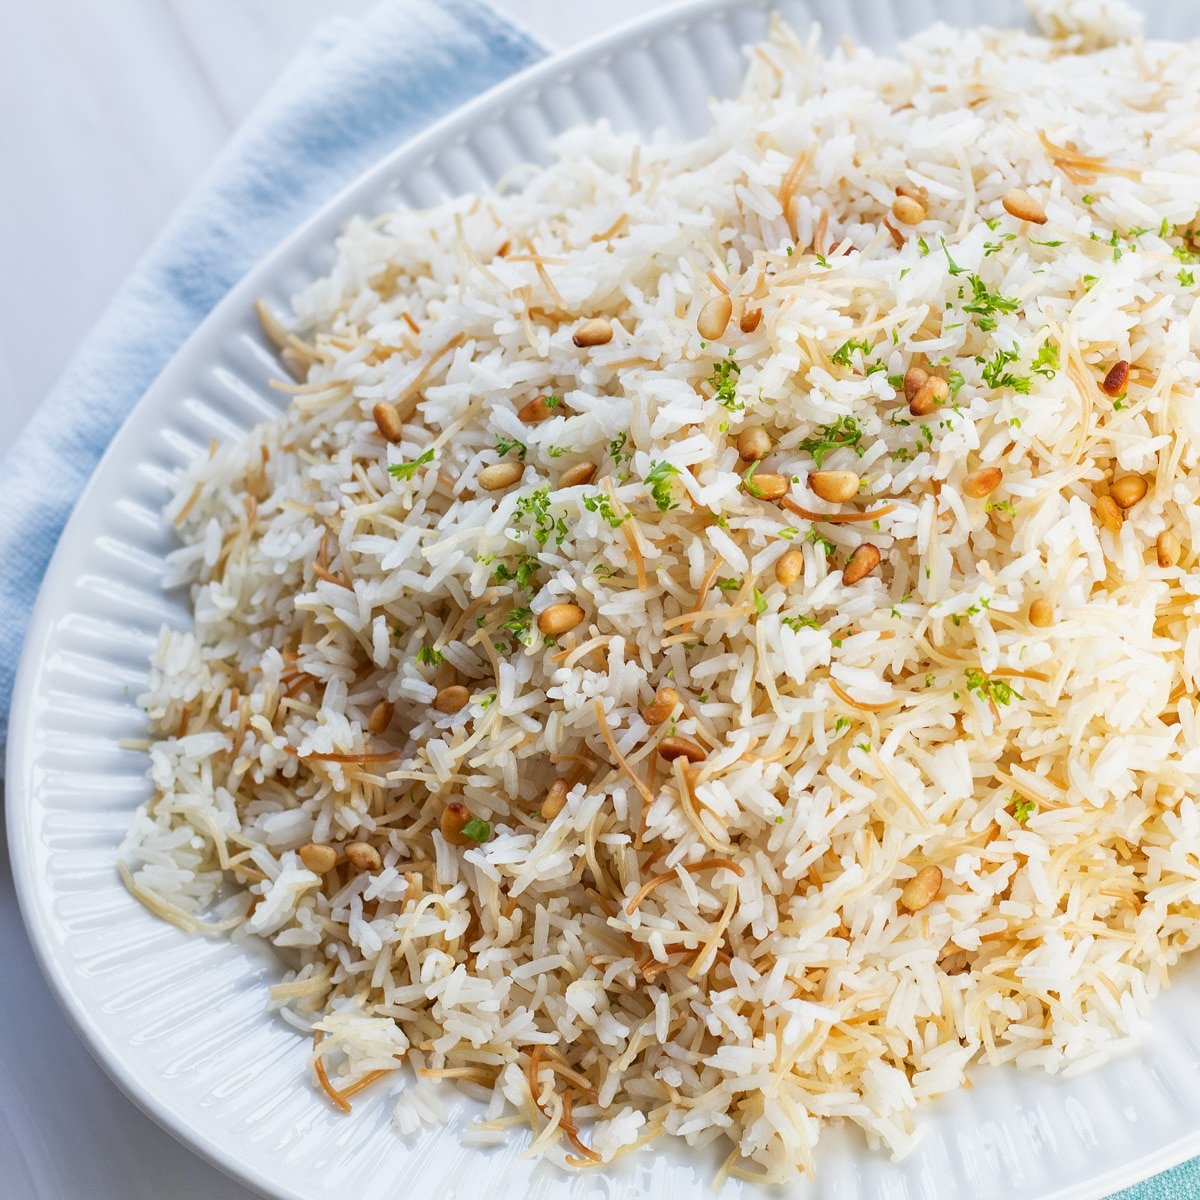 Beautiful and fragrant vermicelli rice served on large white platter.